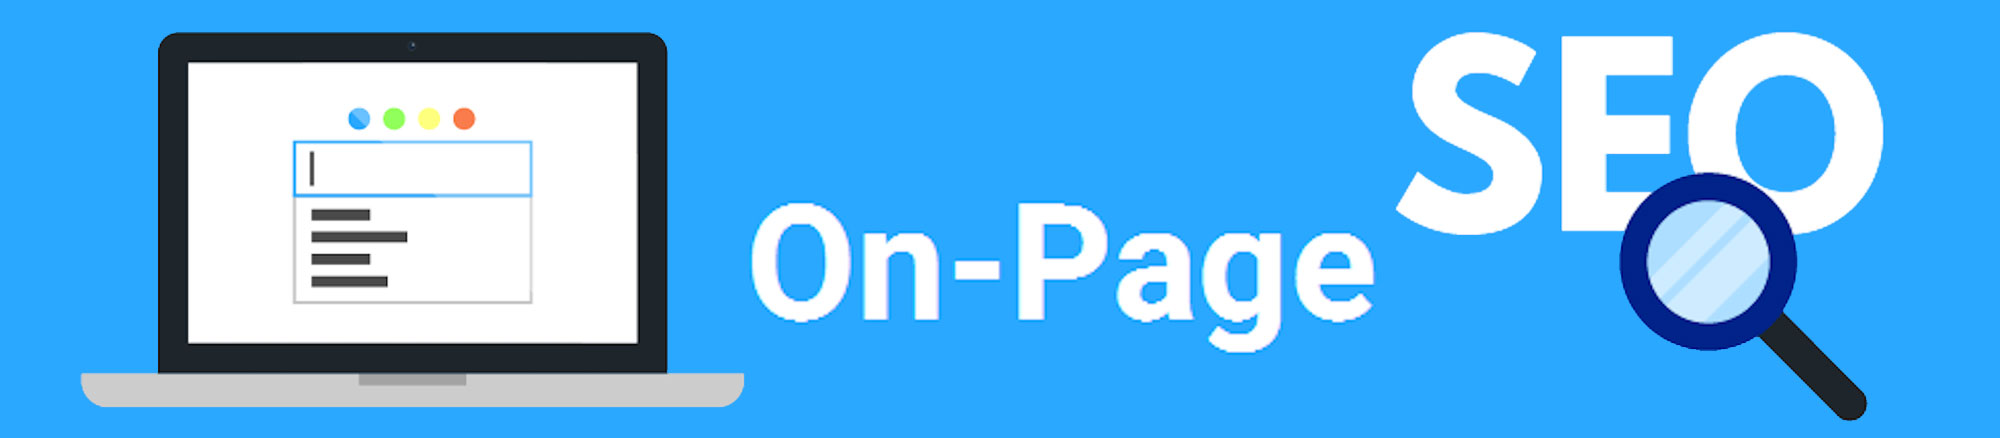 onpage optimization tool gurgaon